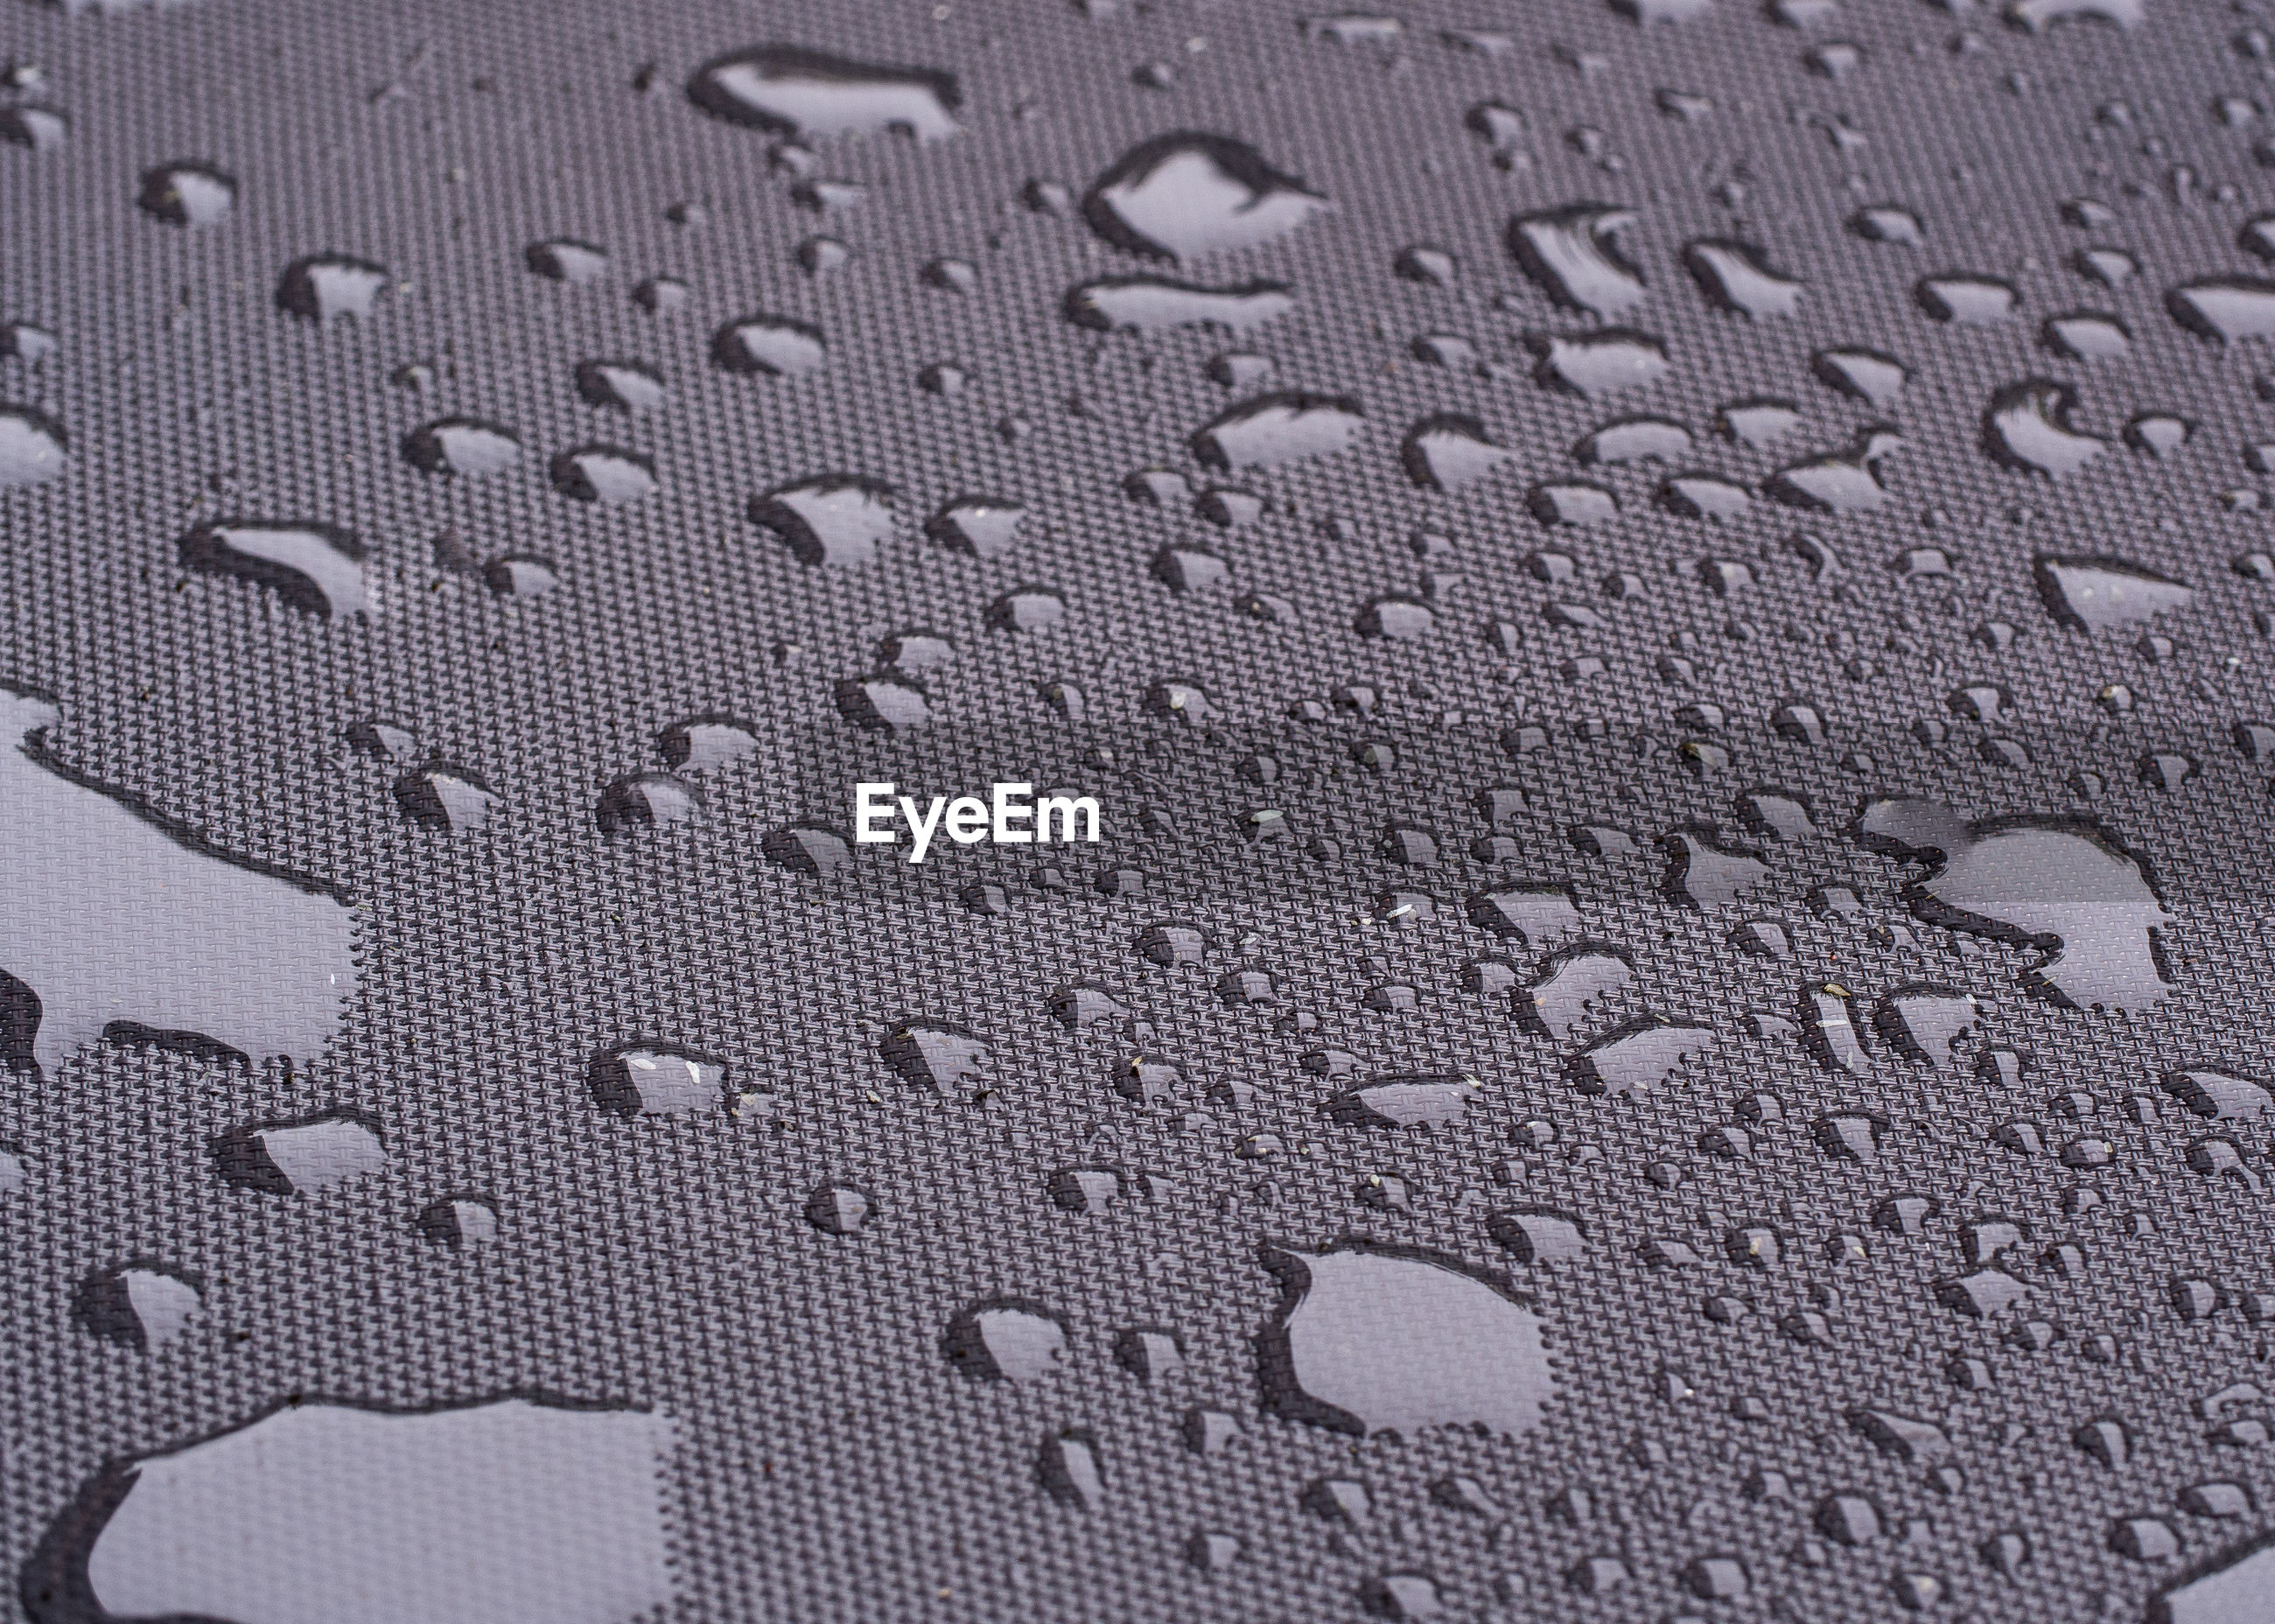 FULL FRAME SHOT OF WATER DROPS ON TEXTURED SURFACE